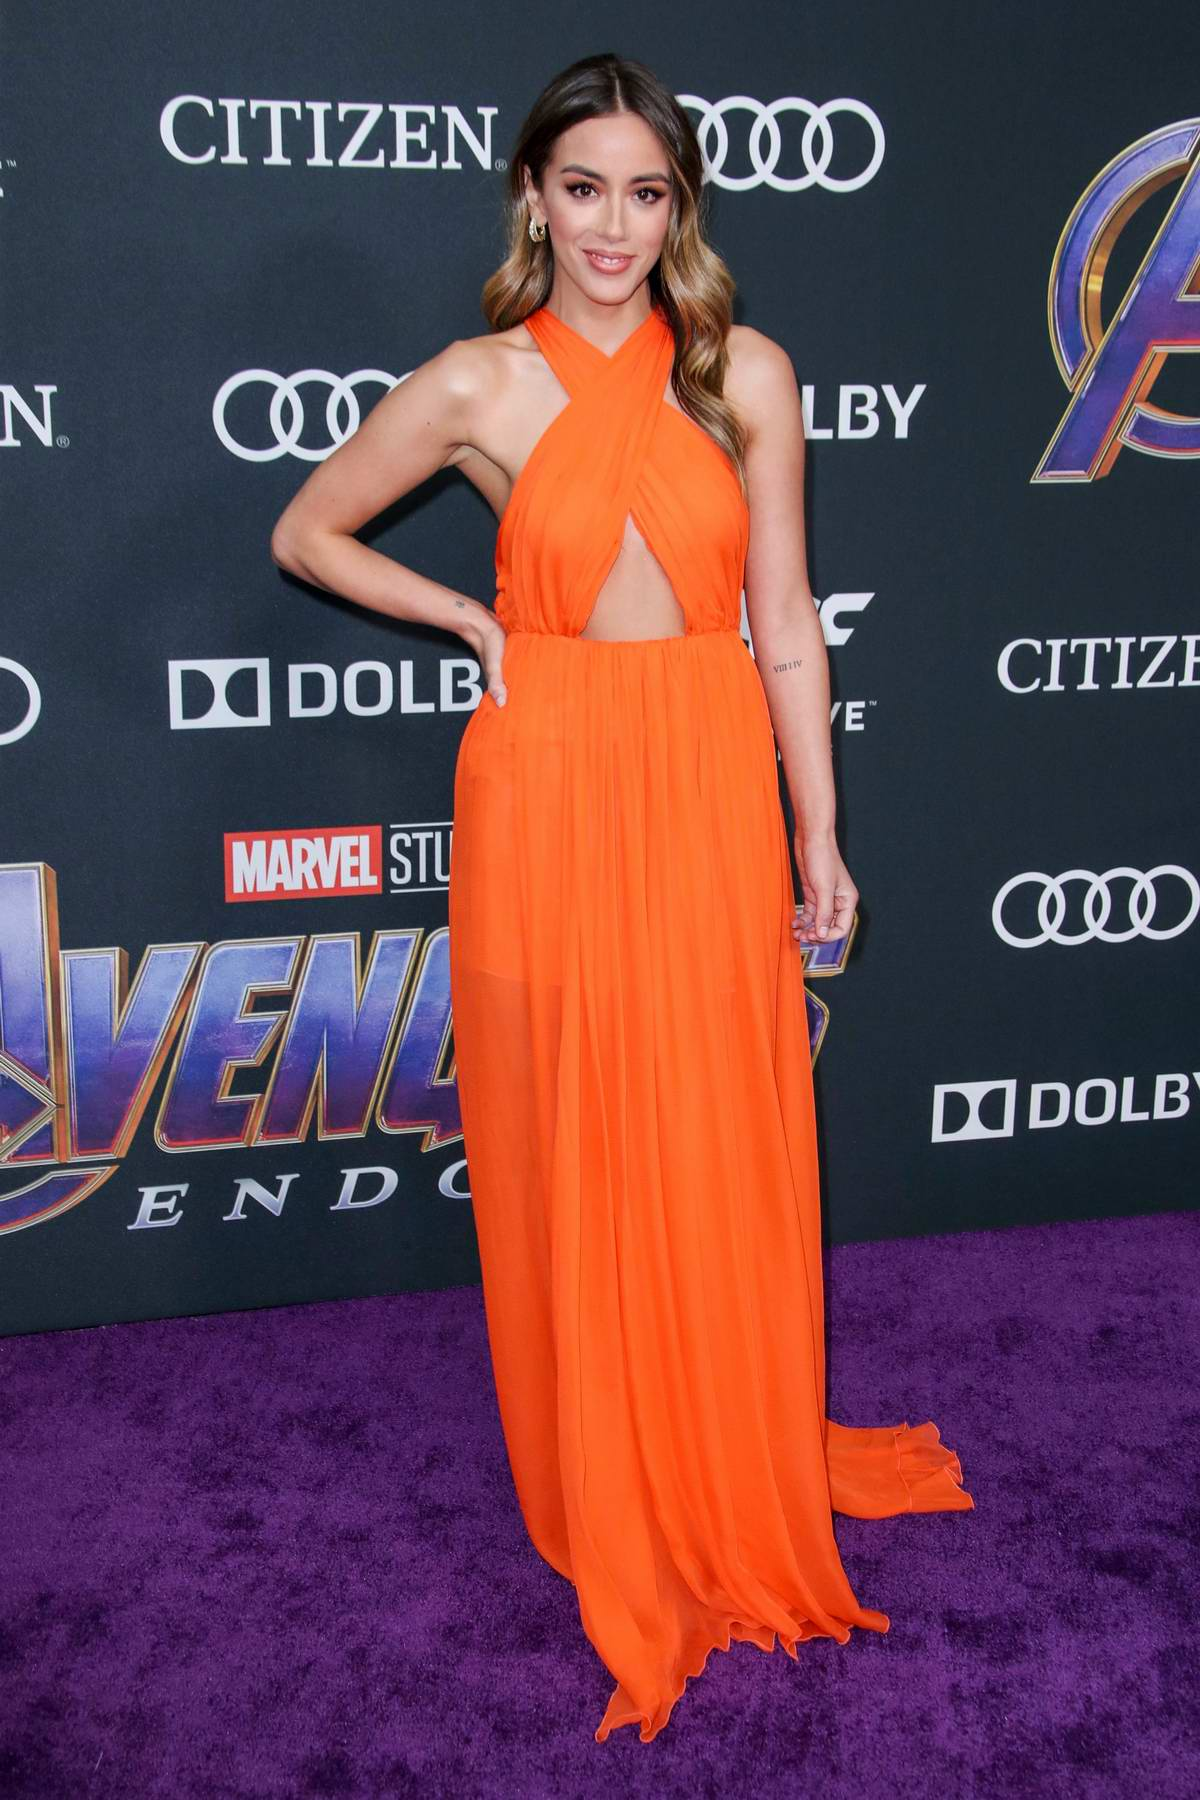 Chloe Bennet attends the World Premiere of 'Avengers: Endgame' at the LA Convention Center in Los Angeles